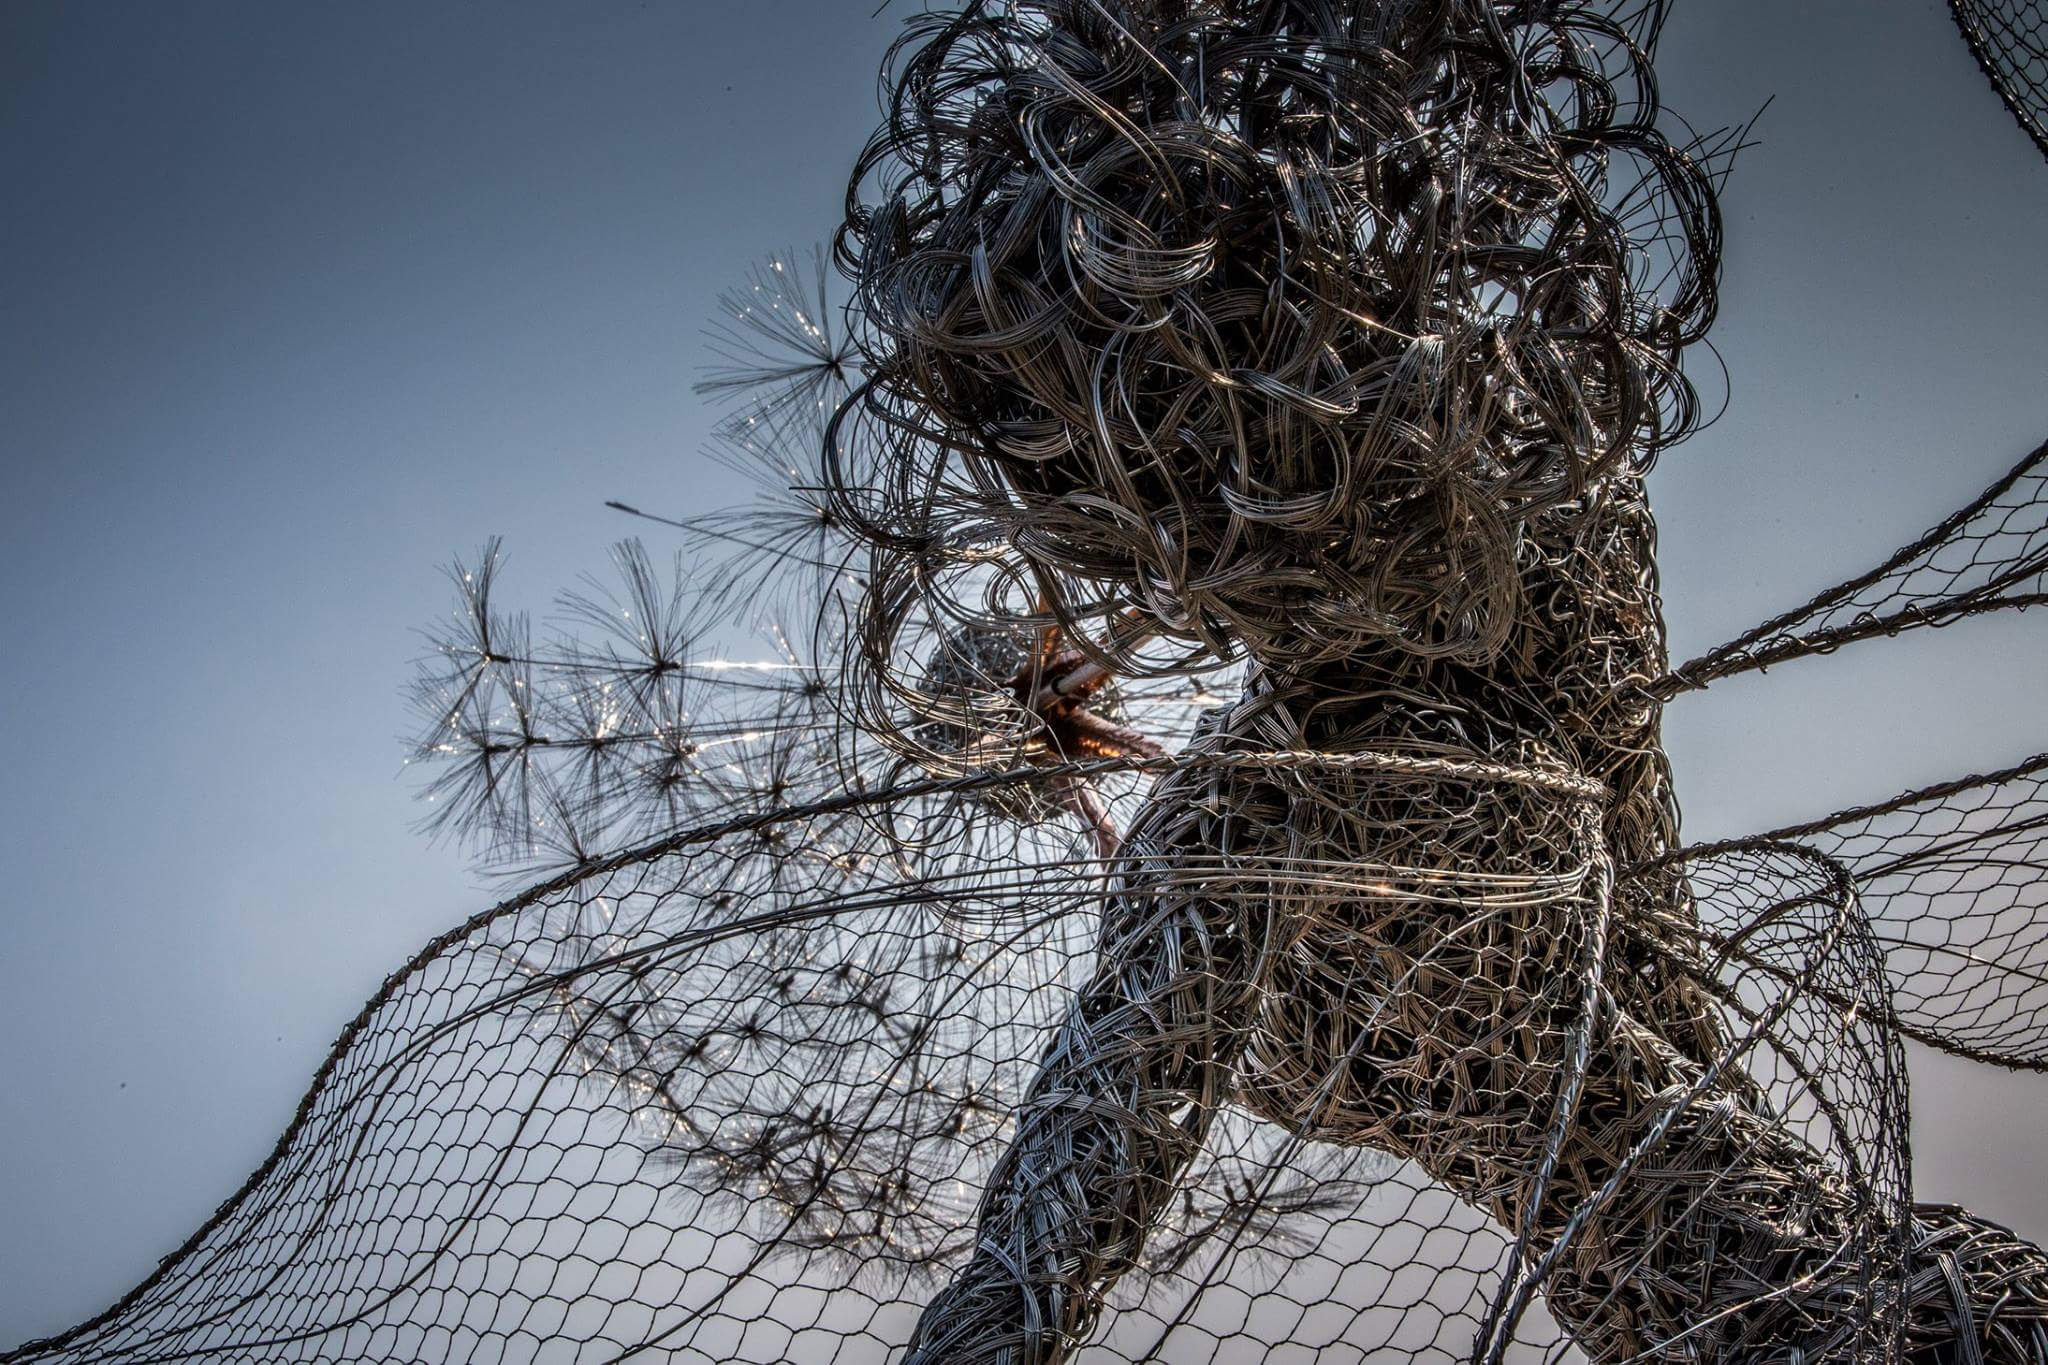 These Fantasy Wire Sculptures By Robin Wight Are From a ...